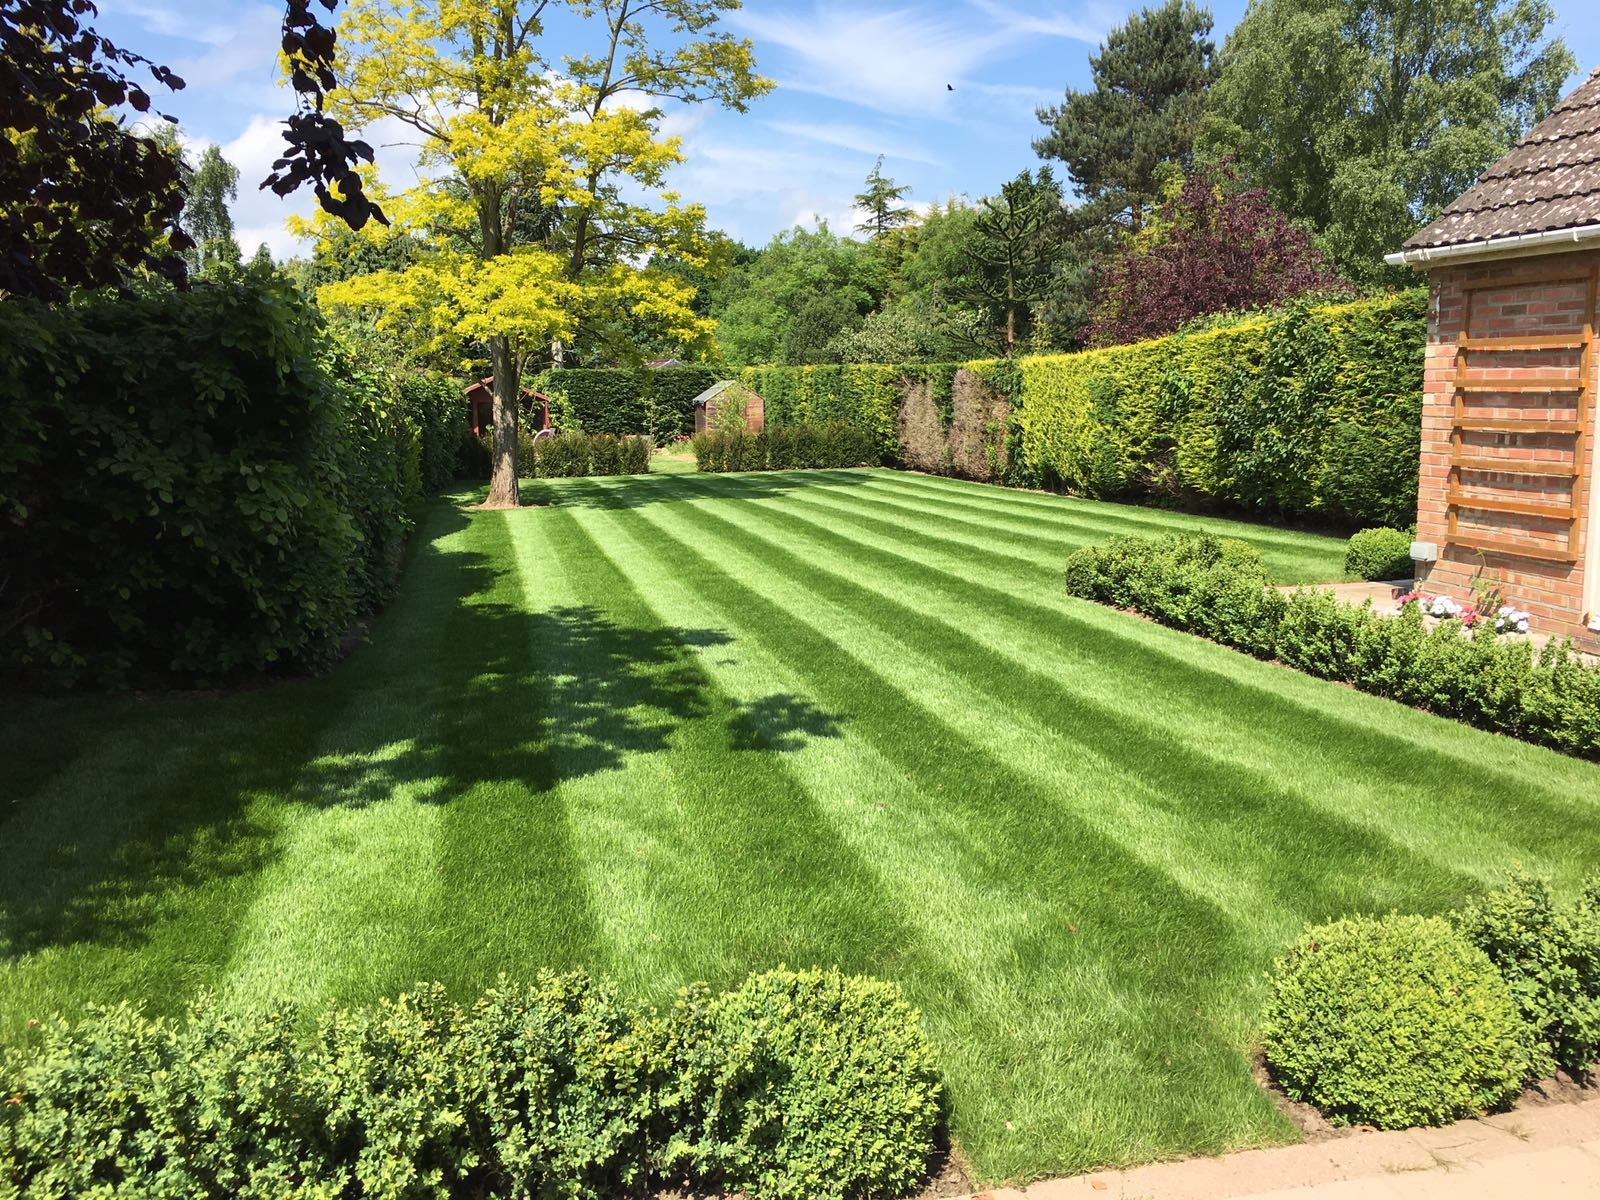 Lawn Treatment Service